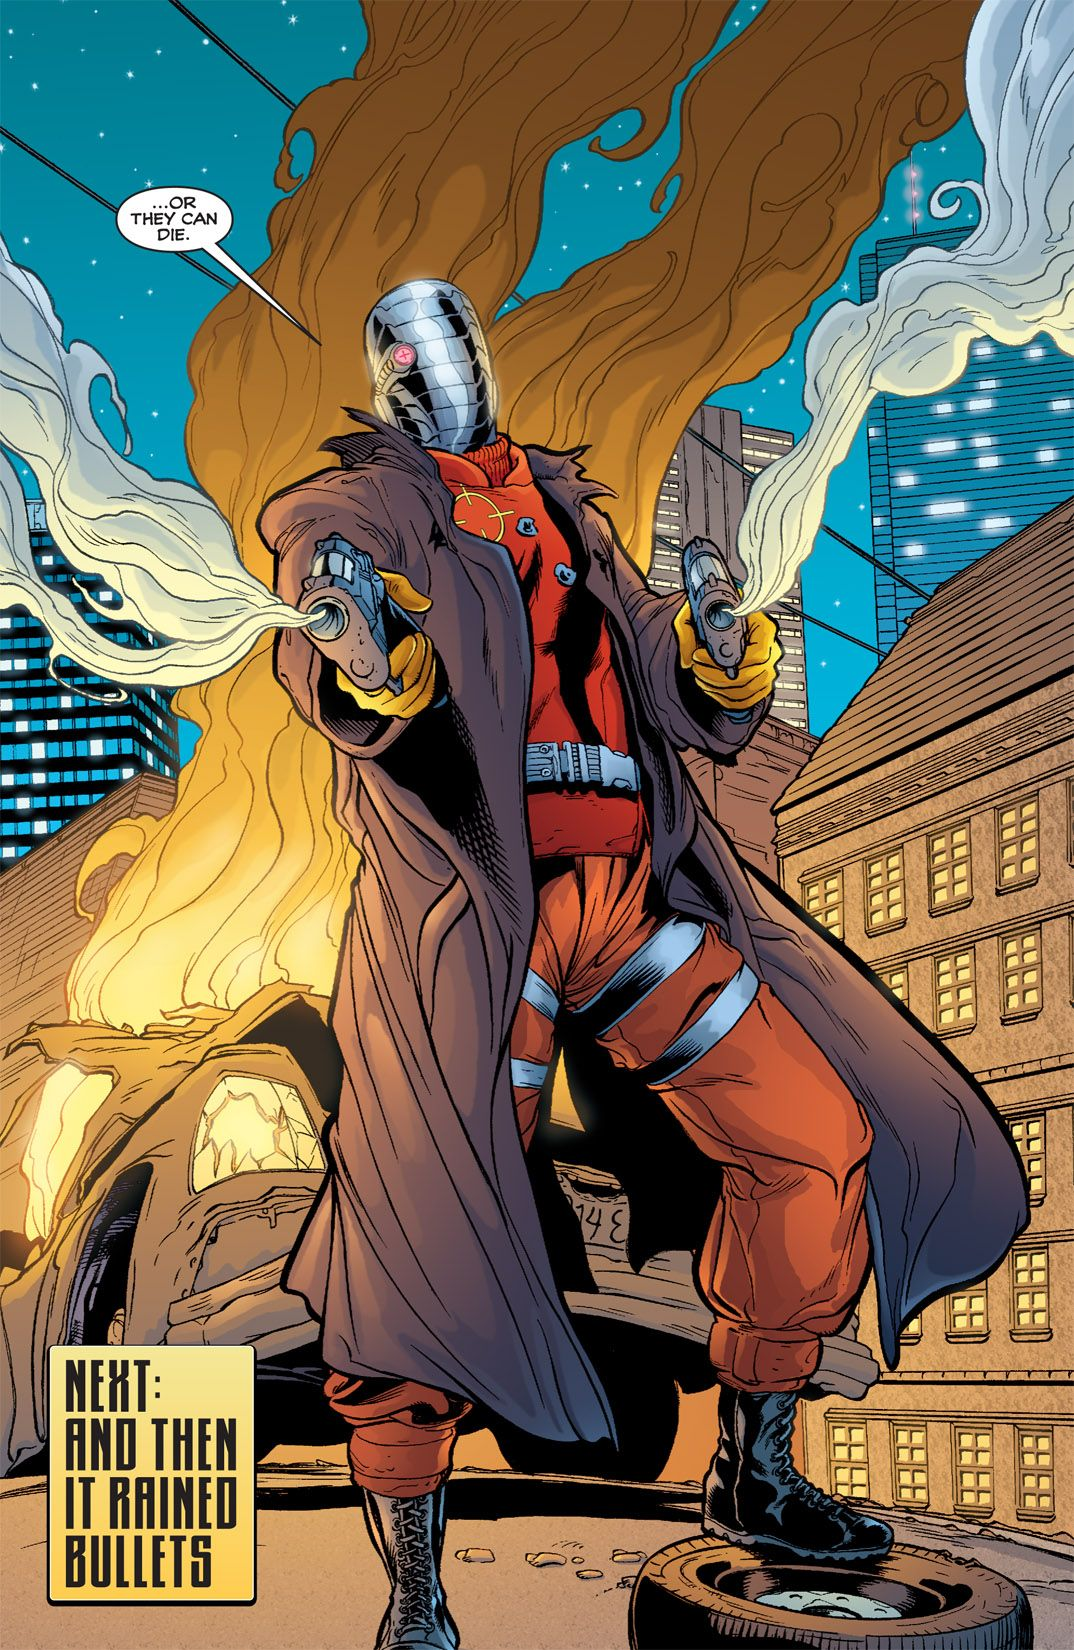 Deadshot 2005 Issue 1 Read Deadshot 2005 Issue 1 Comic